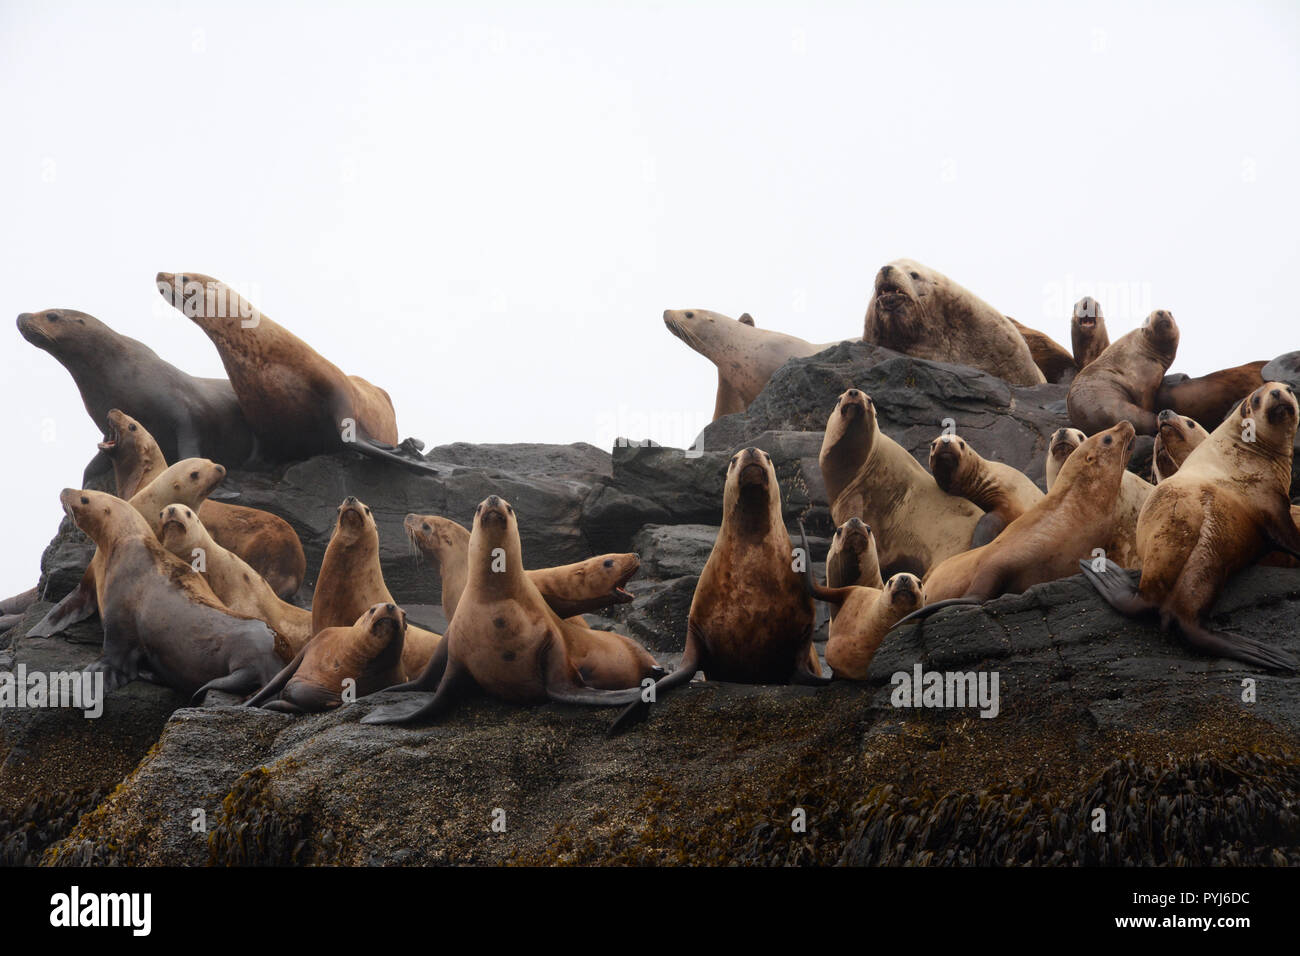 A colony of steller sea lions, including a large male (bull), on a rookery during breeding season, in the Aleutian Islands, Bering Sea, Alaska. - Stock Image